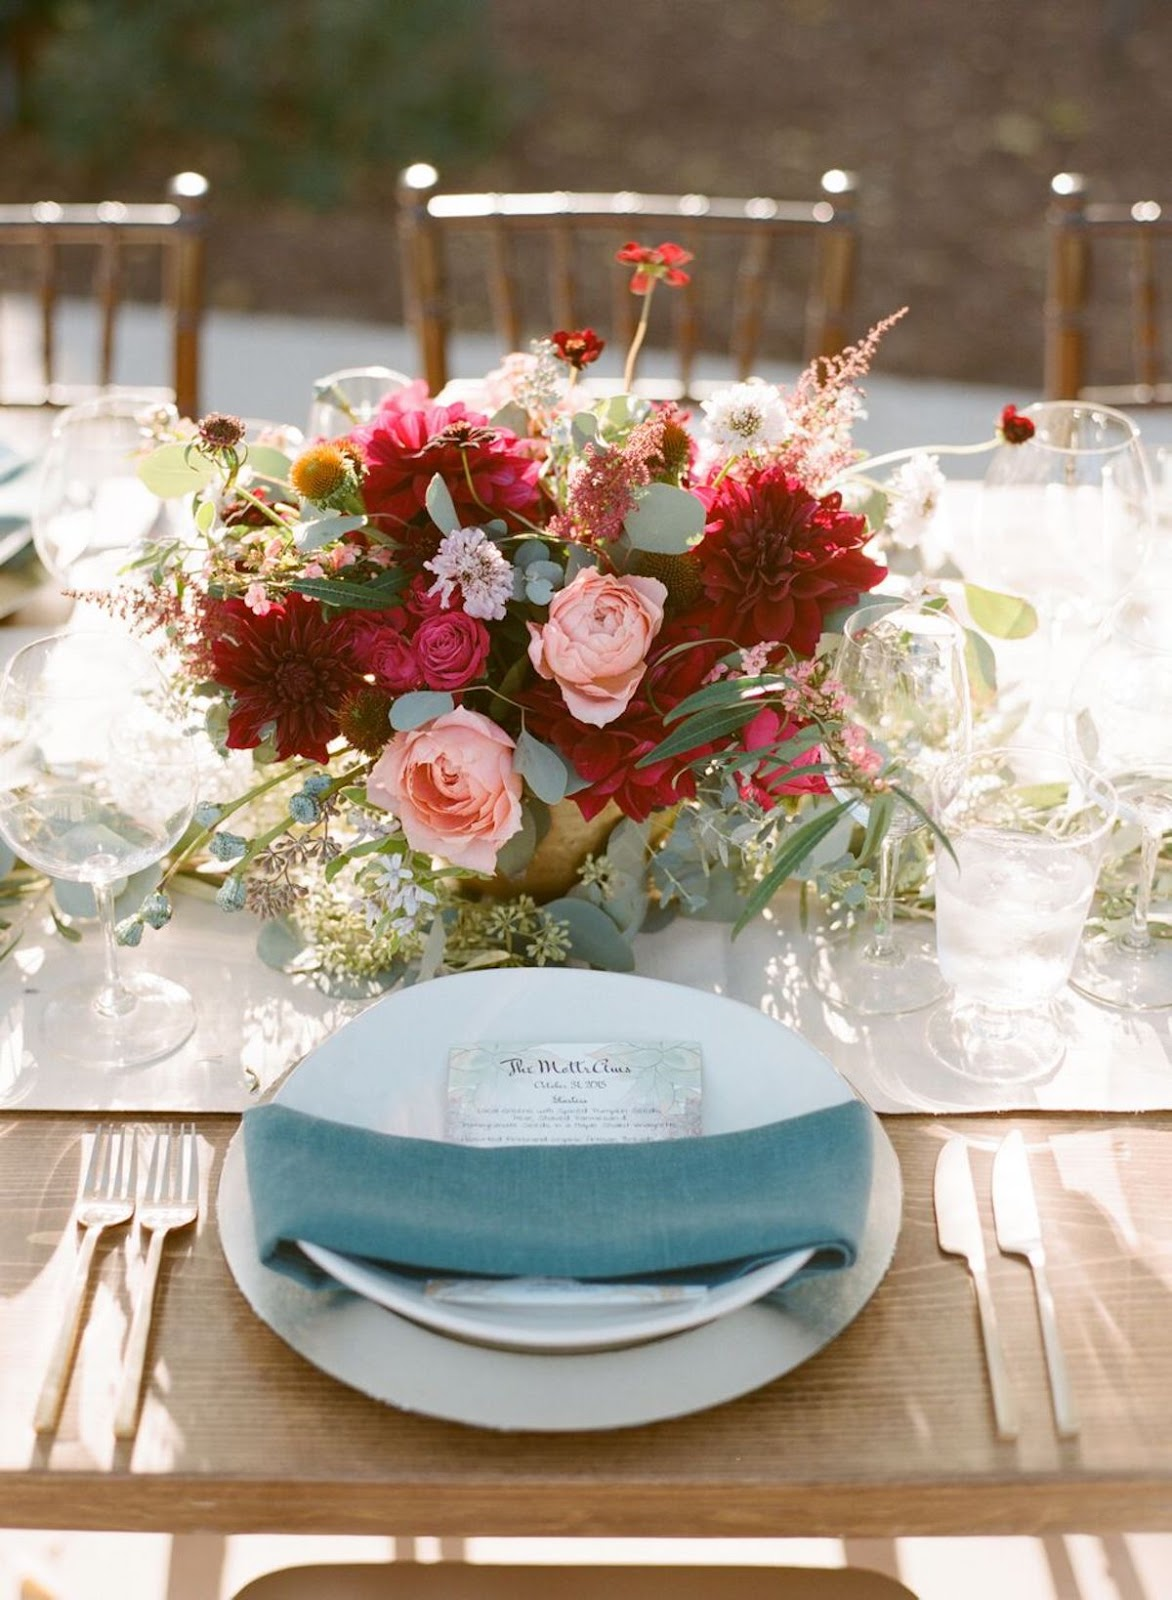 Annamarie + David's Wedding  Bursting with October shades and whimsical pops of teal, this Autumnal theme was wrapped up beautifully by their blossoming centerpieces. Bedded by a neutral linen table runner that stretched along the farm king-style table, a cool blueish-green garland draped down the center with ease. To bring in splashes of Autumn color, textured floral arrangements of blooms in burgundy, fuschia, and peach with pops of succulents were placed along the center, and scattered in between with lush pomegranates. A beautiful Autumn centerpiece expression, indeed! Florals:   Loop Flowers   Rentals:  Bright Event Rentals  Paper Goods: Etsy